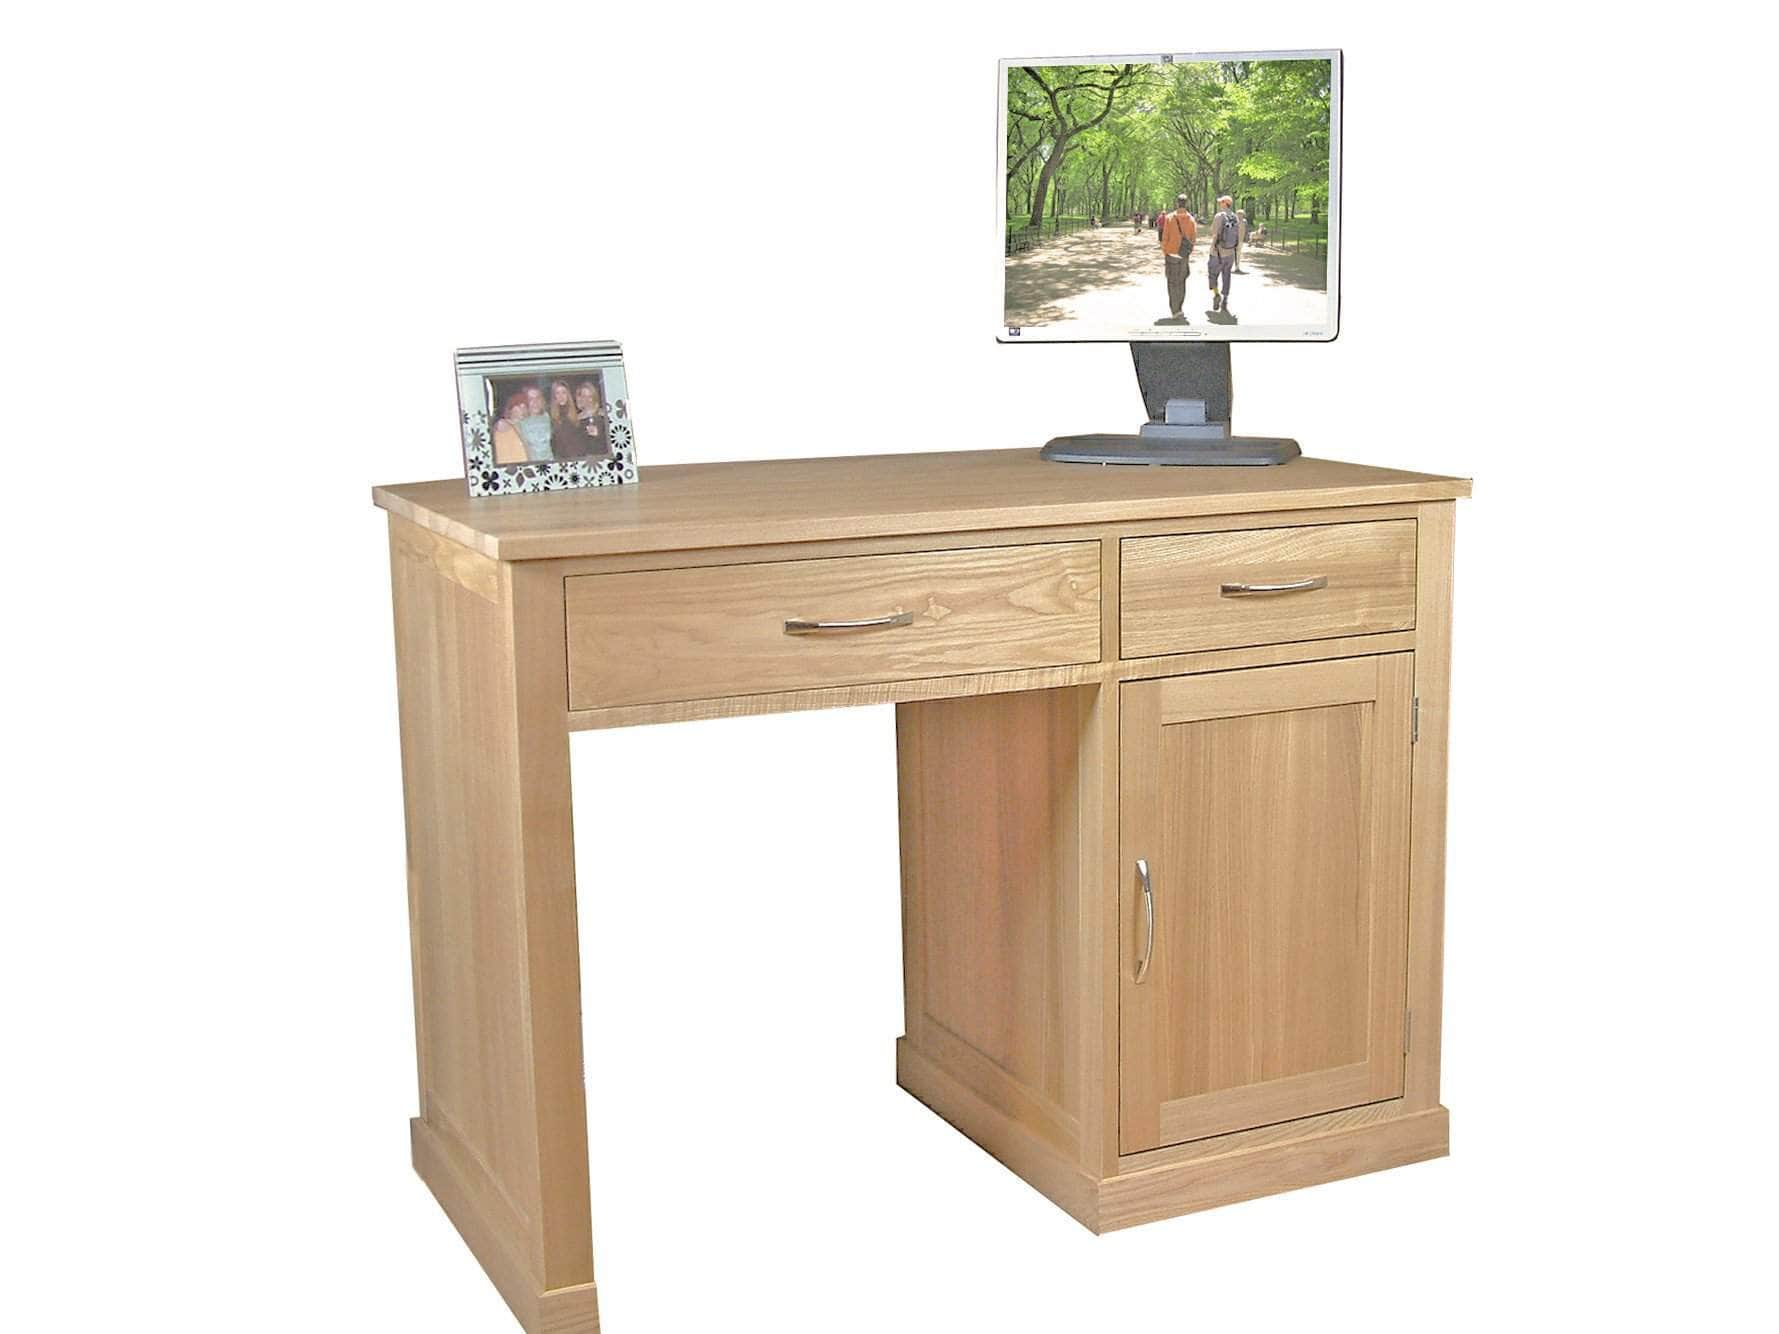 Obell small home office oak desk, with cupboard, drawer and keyboard tray